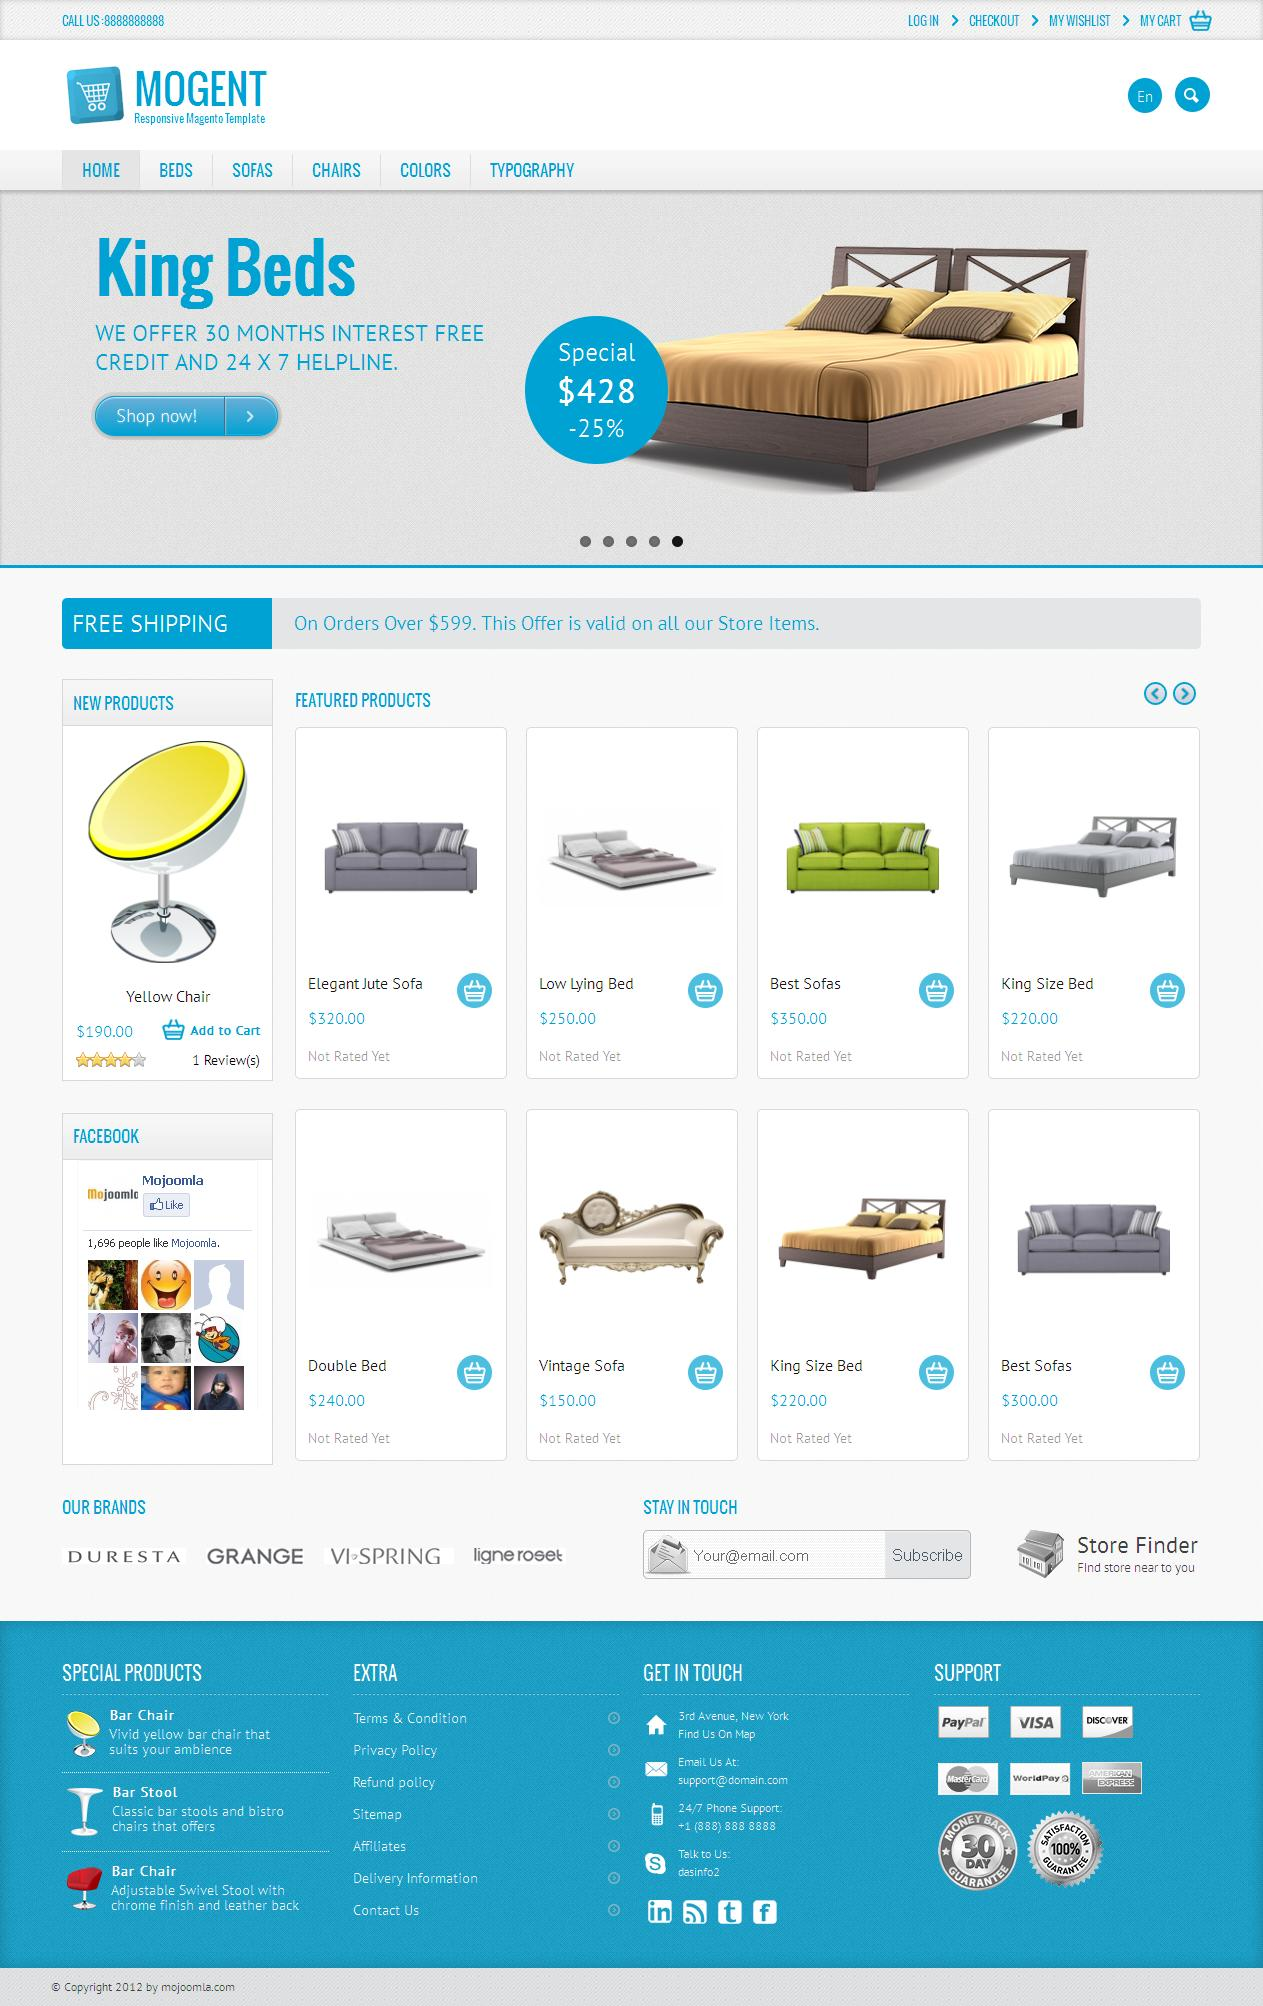 Magento Theme Customization by dasinfomedia - 16410